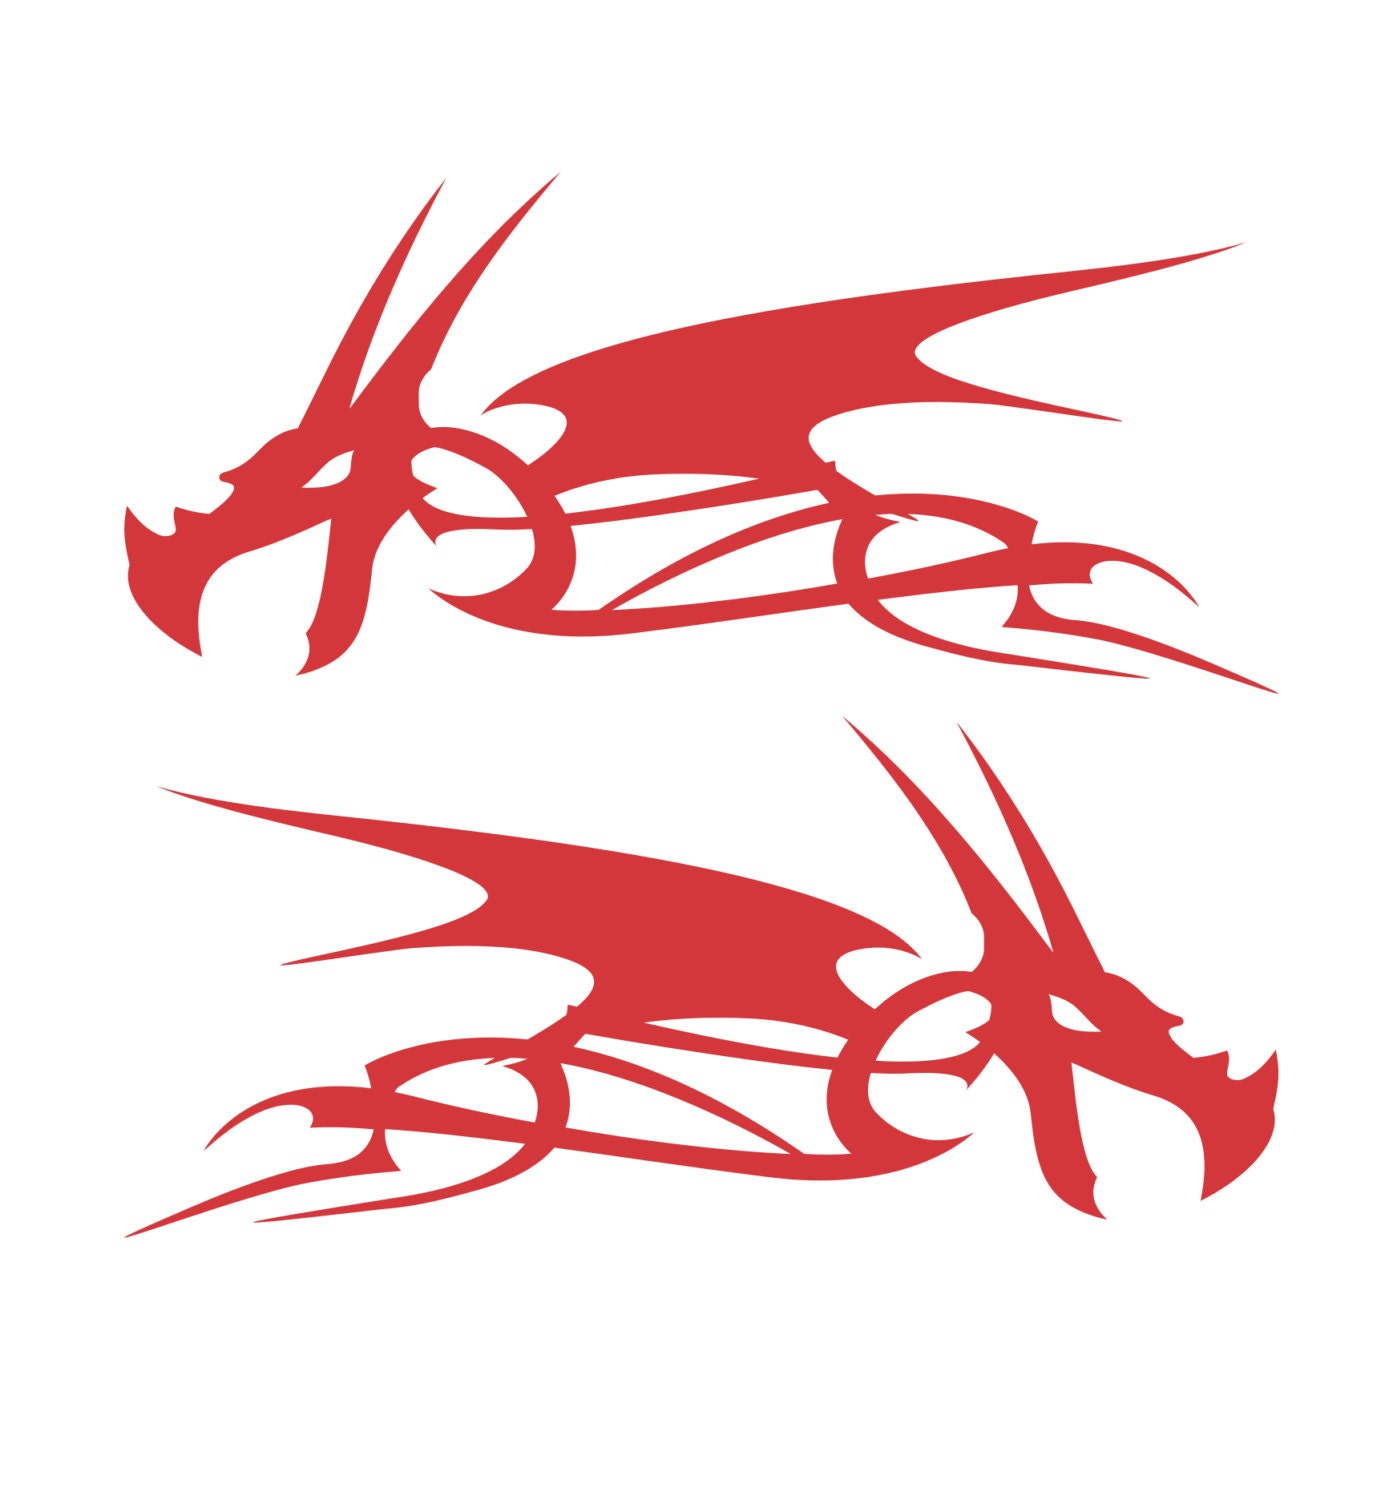 Dragon Head Flame Vinyl Decal Stickers Motorcycle Gas Tank - Vinyl stickers for motorcycles